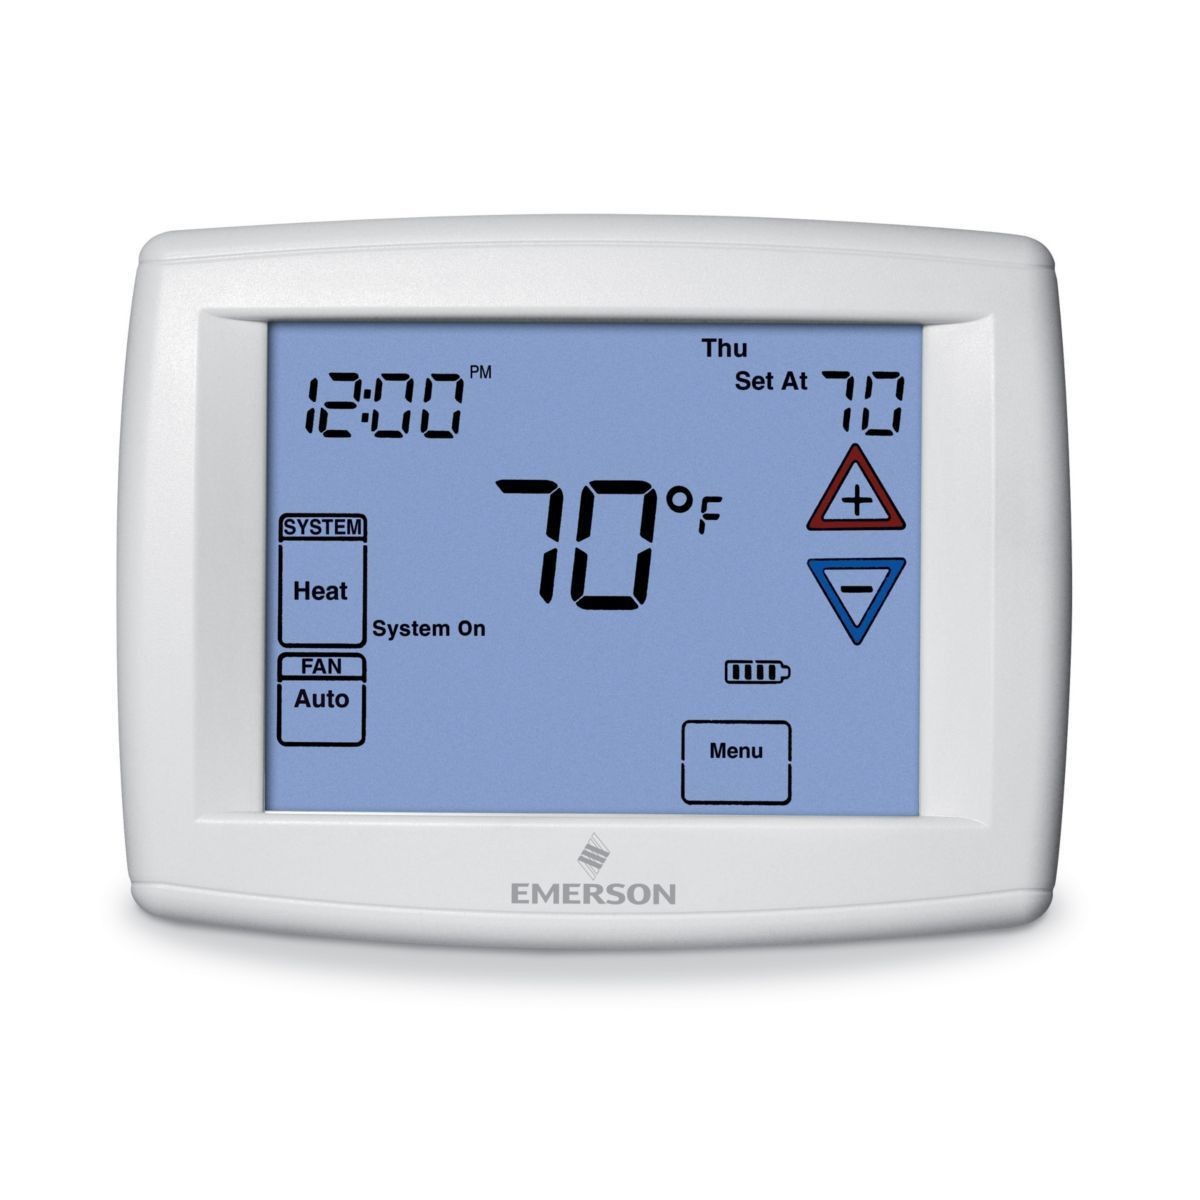 Emerson - Big Blue Universal Thermostat with Automatic Heat/Cool Changeover Option